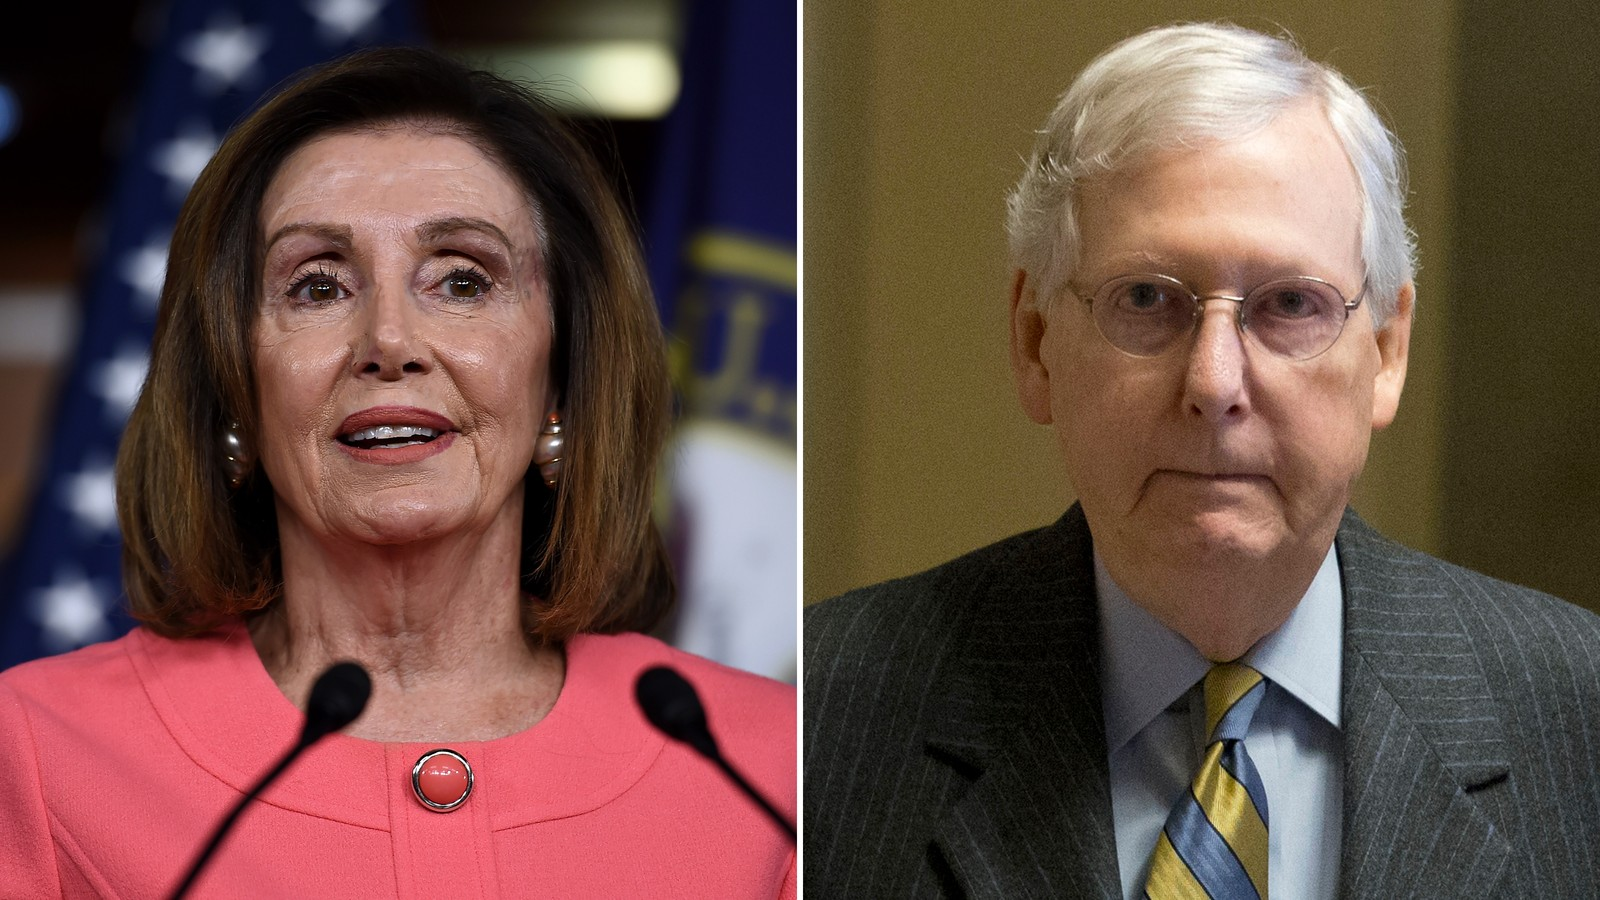 Pelosi: Trump and McConnell 'should not try to hide behind' impeachment excuse over coronavirus response